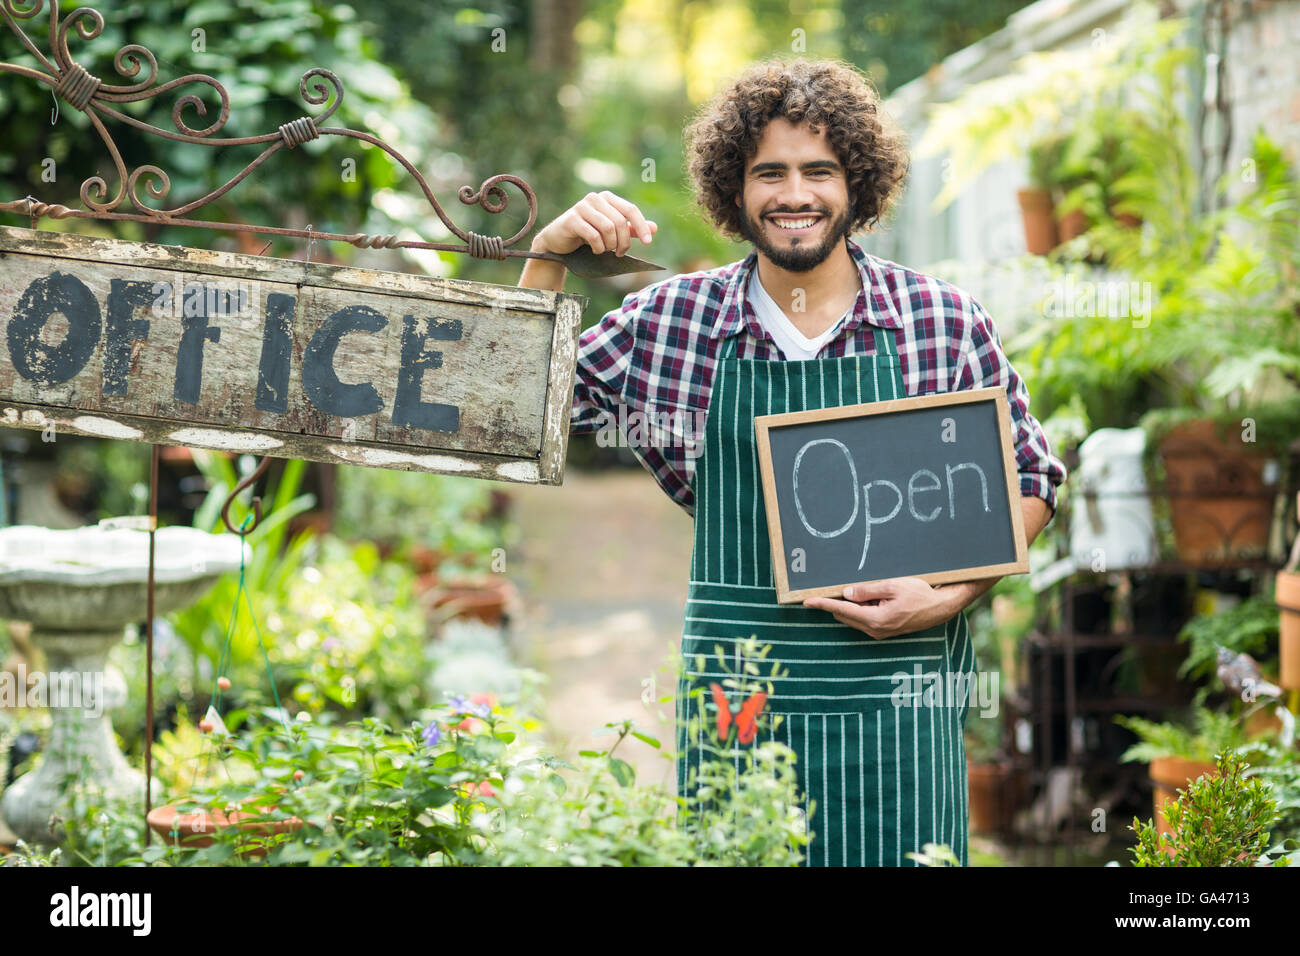 Male gardener holding open sign by office placard - Stock Image